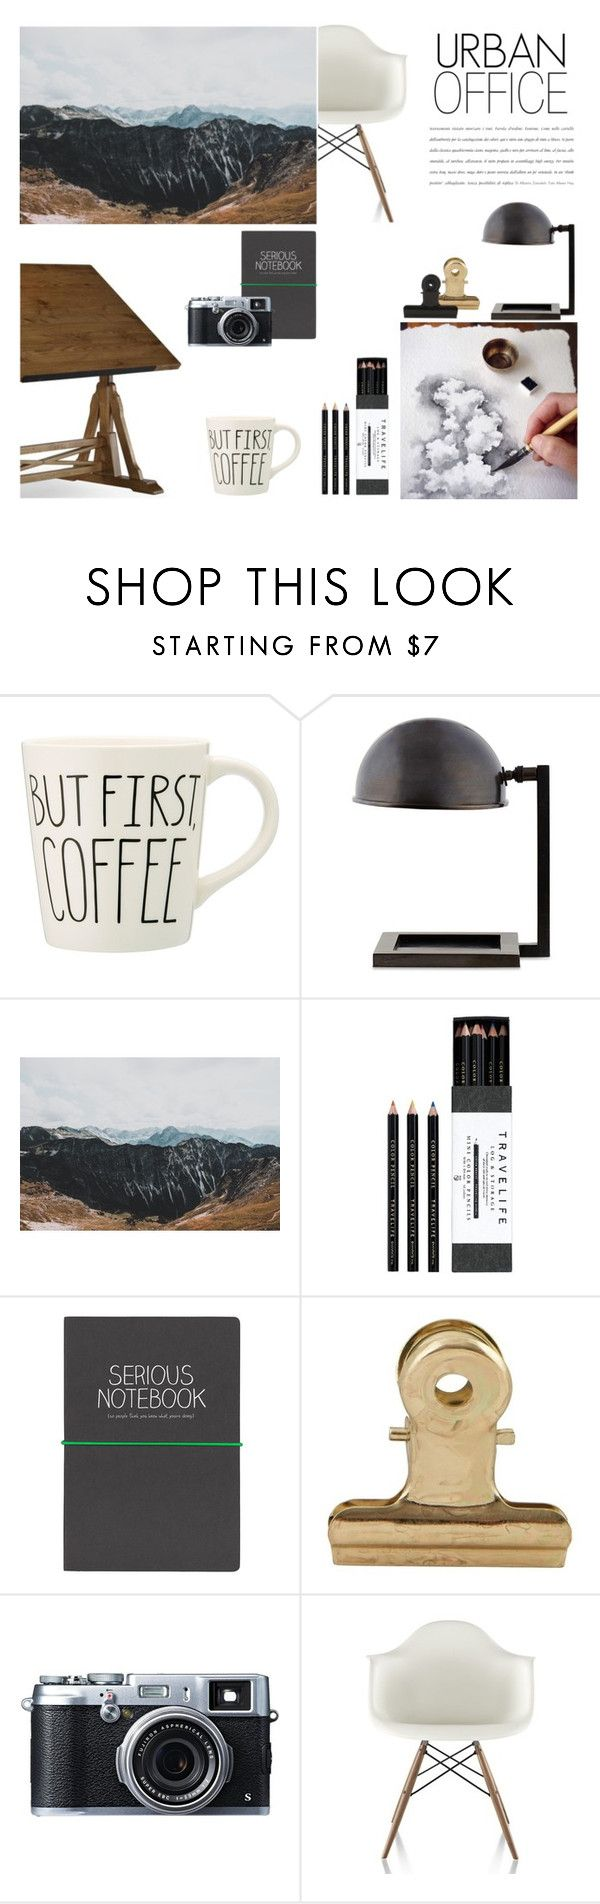 """Urban Office"" by nmkratz ❤ liked on Polyvore featuring interior, interiors, interior design, home, home decor, interior decorating, Williams-Sonoma, Mark's Tokyo Edge, Wild & Wolf and House Doctor"